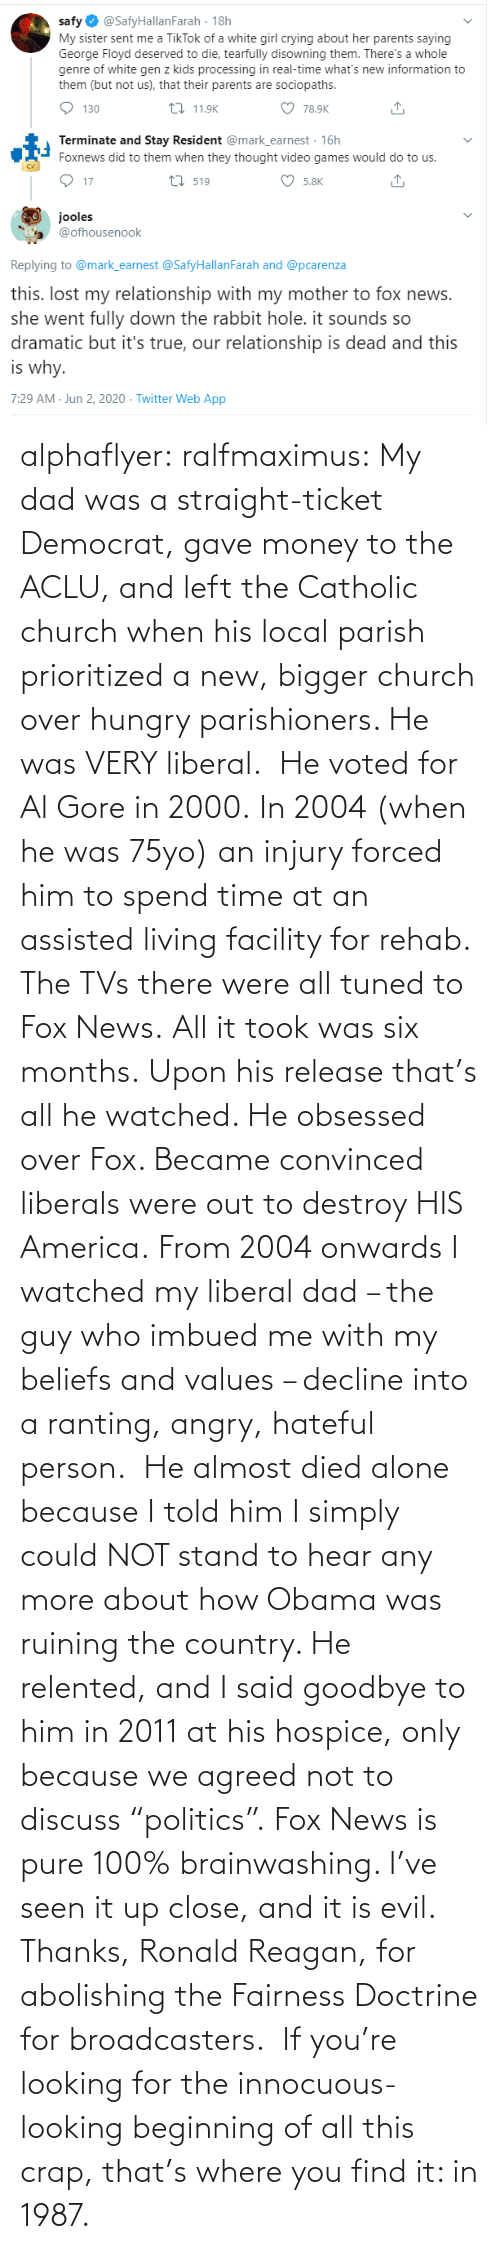 """Al Gore, Being Alone, and America: alphaflyer:  ralfmaximus:  My dad was a straight-ticket Democrat, gave money to the ACLU, and left the Catholic church when his local parish prioritized a new, bigger church over hungry parishioners. He was VERY liberal. He voted for Al Gore in 2000. In 2004 (when he was 75yo) an injury forced him to spend time at an assisted living facility for rehab. The TVs there were all tuned to Fox News. All it took was six months. Upon his release that's all he watched. He obsessed over Fox. Became convinced liberals were out to destroy HIS America. From 2004 onwards I watched my liberal dad – the guy who imbued me with my beliefs and values – decline into a ranting, angry, hateful person. He almost died alone because I told him I simply could NOT stand to hear any more about how Obama was ruining the country. He relented, and I said goodbye to him in 2011 at his hospice, only because we agreed not to discuss""""politics"""". Fox News is pure 100% brainwashing. I've seen it up close, and it is evil.  Thanks, Ronald Reagan, for abolishing the Fairness Doctrine for broadcasters. If you're looking for the innocuous-looking beginning of all this crap, that's where you find it: in 1987."""